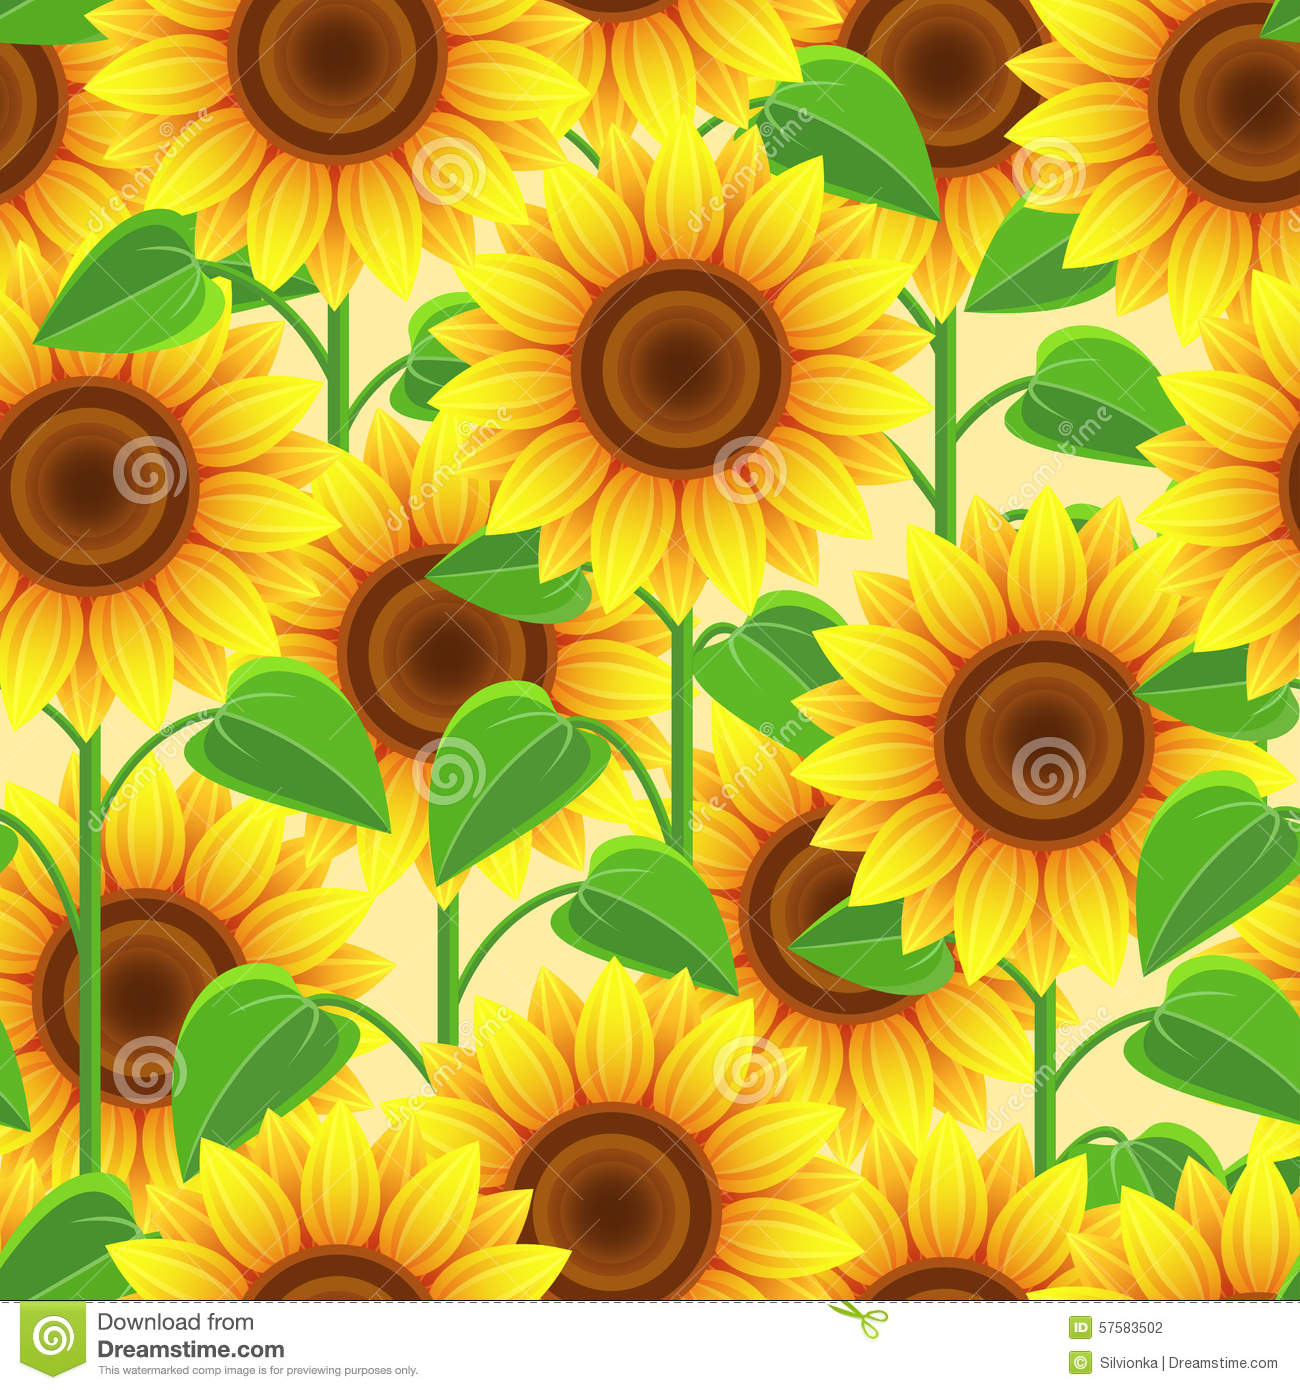 Stylish Wallpaper Girl Bright Seamless Pattern With Flowers Sunflowers Stock